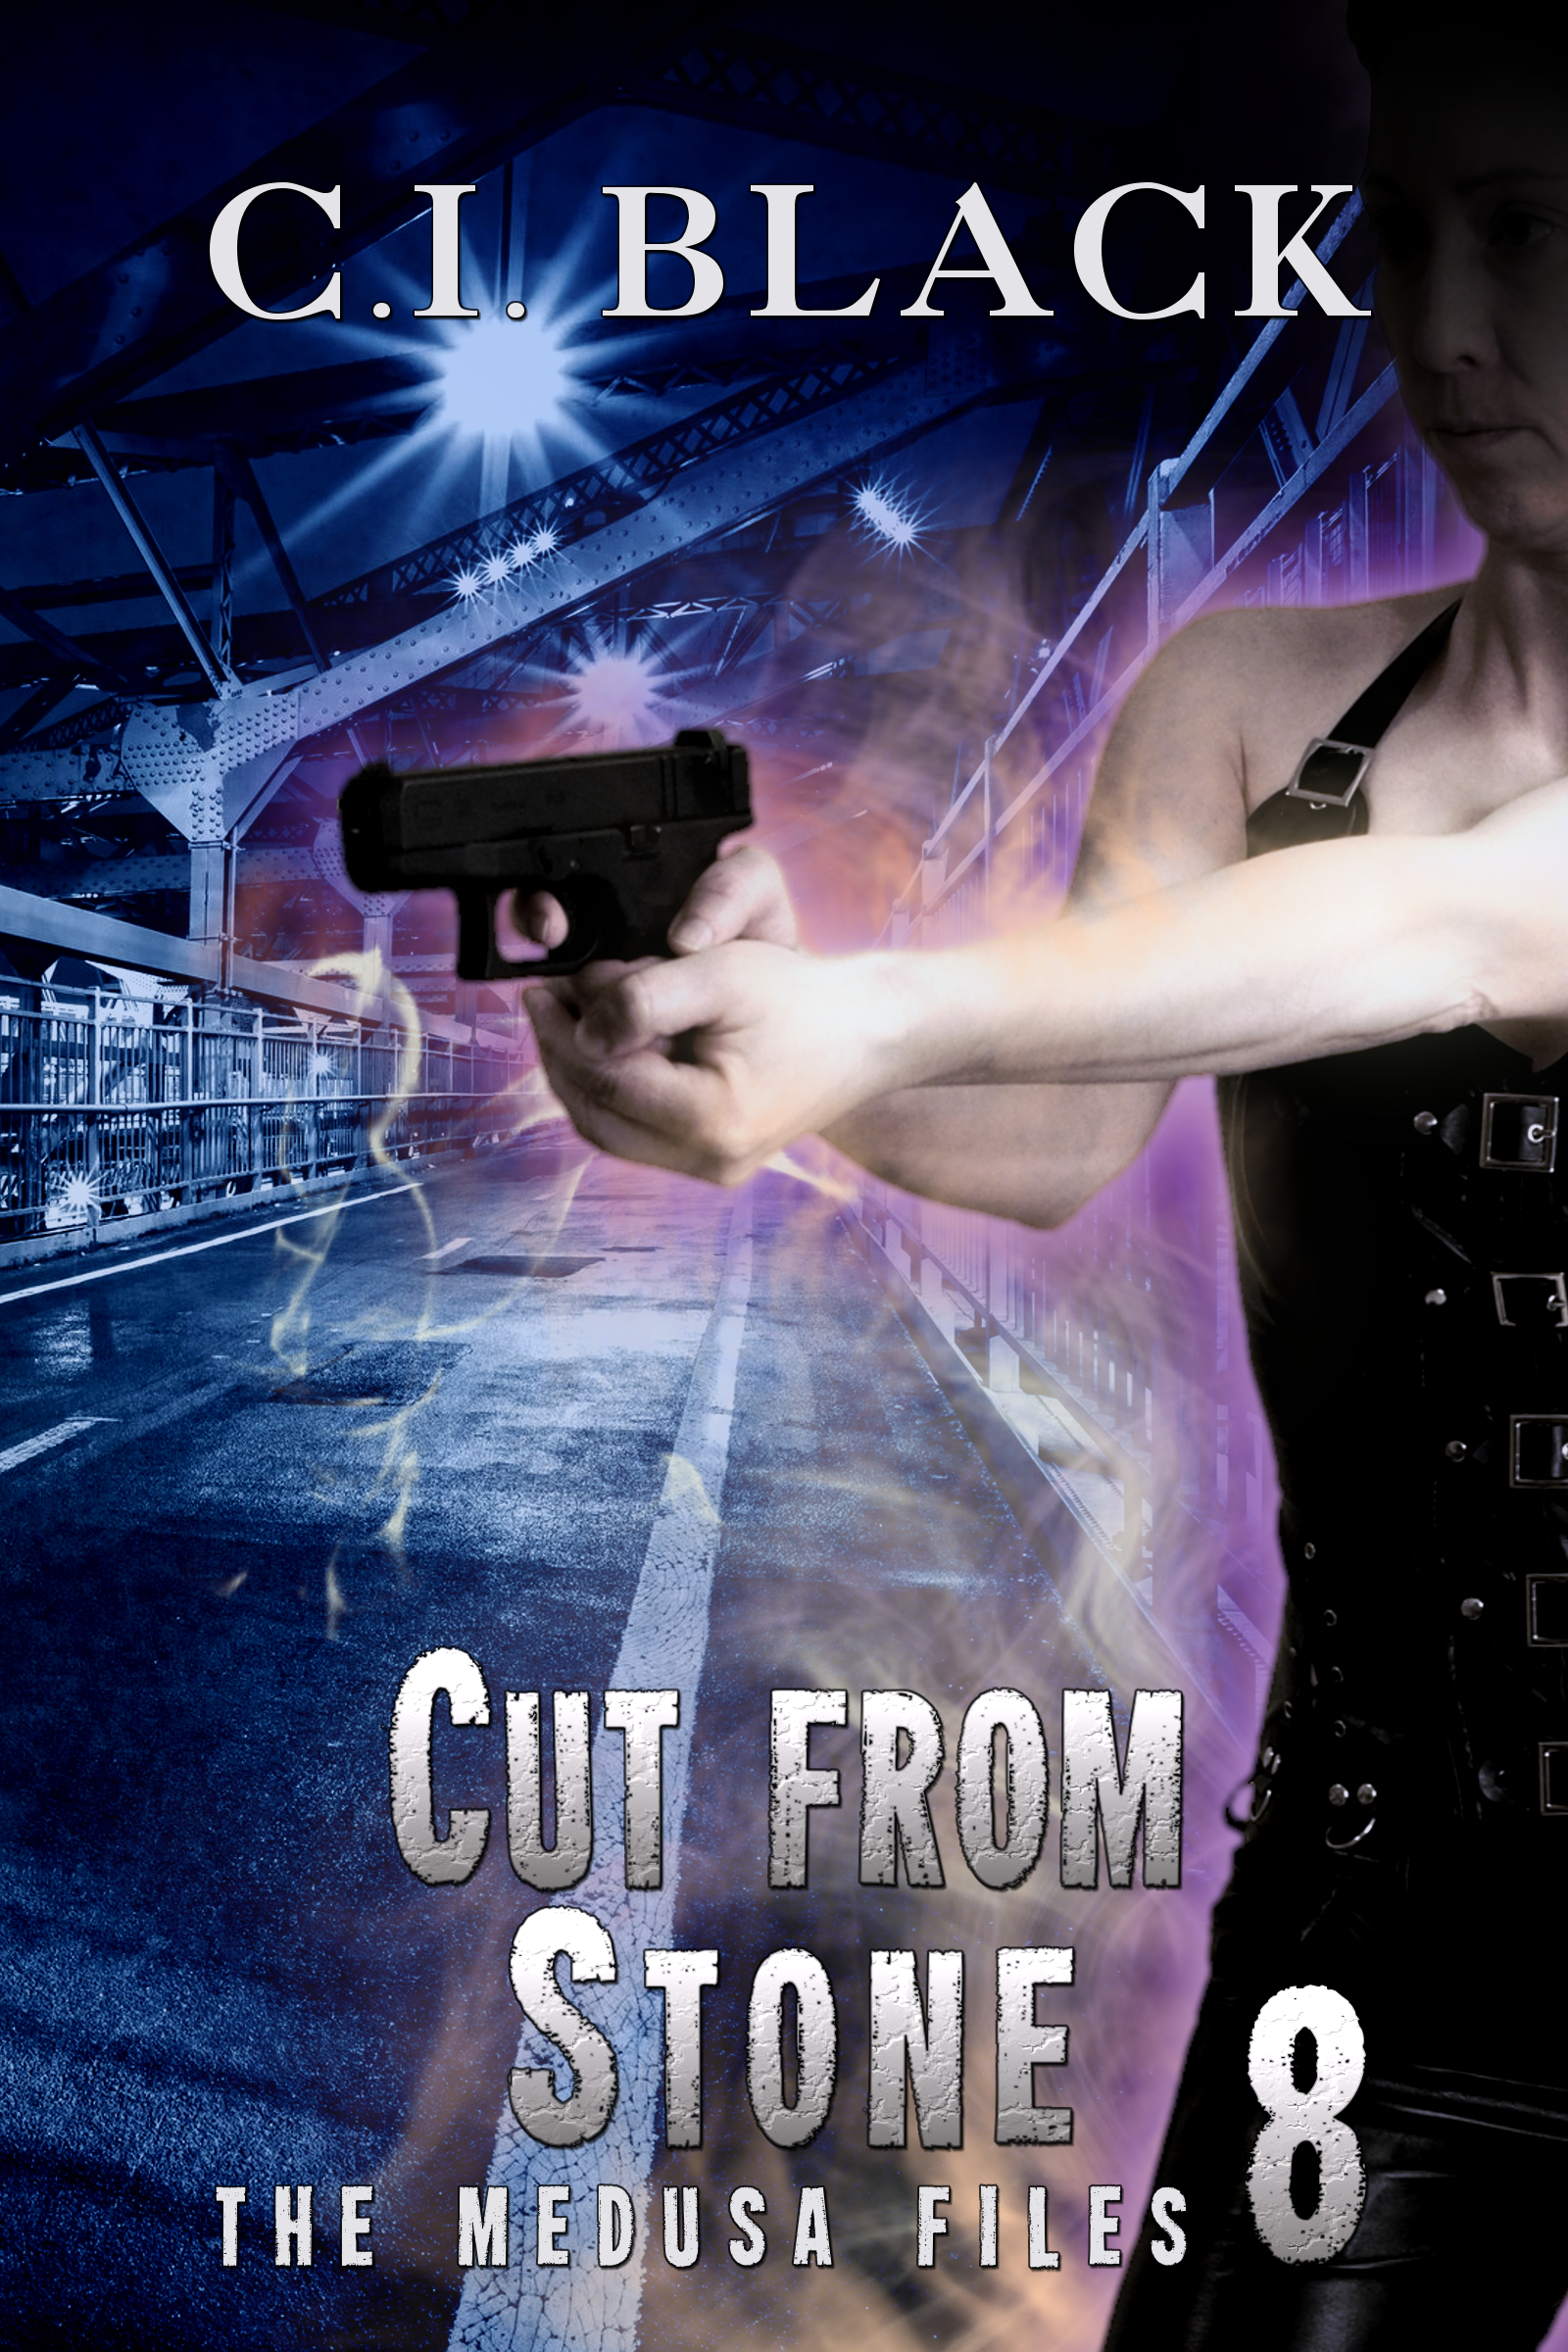 The Medusa Files, case 8: Cut From Stone, an urban fantasy / paranormal romance and the eighth book in the Medusa Files series by C.I. Black